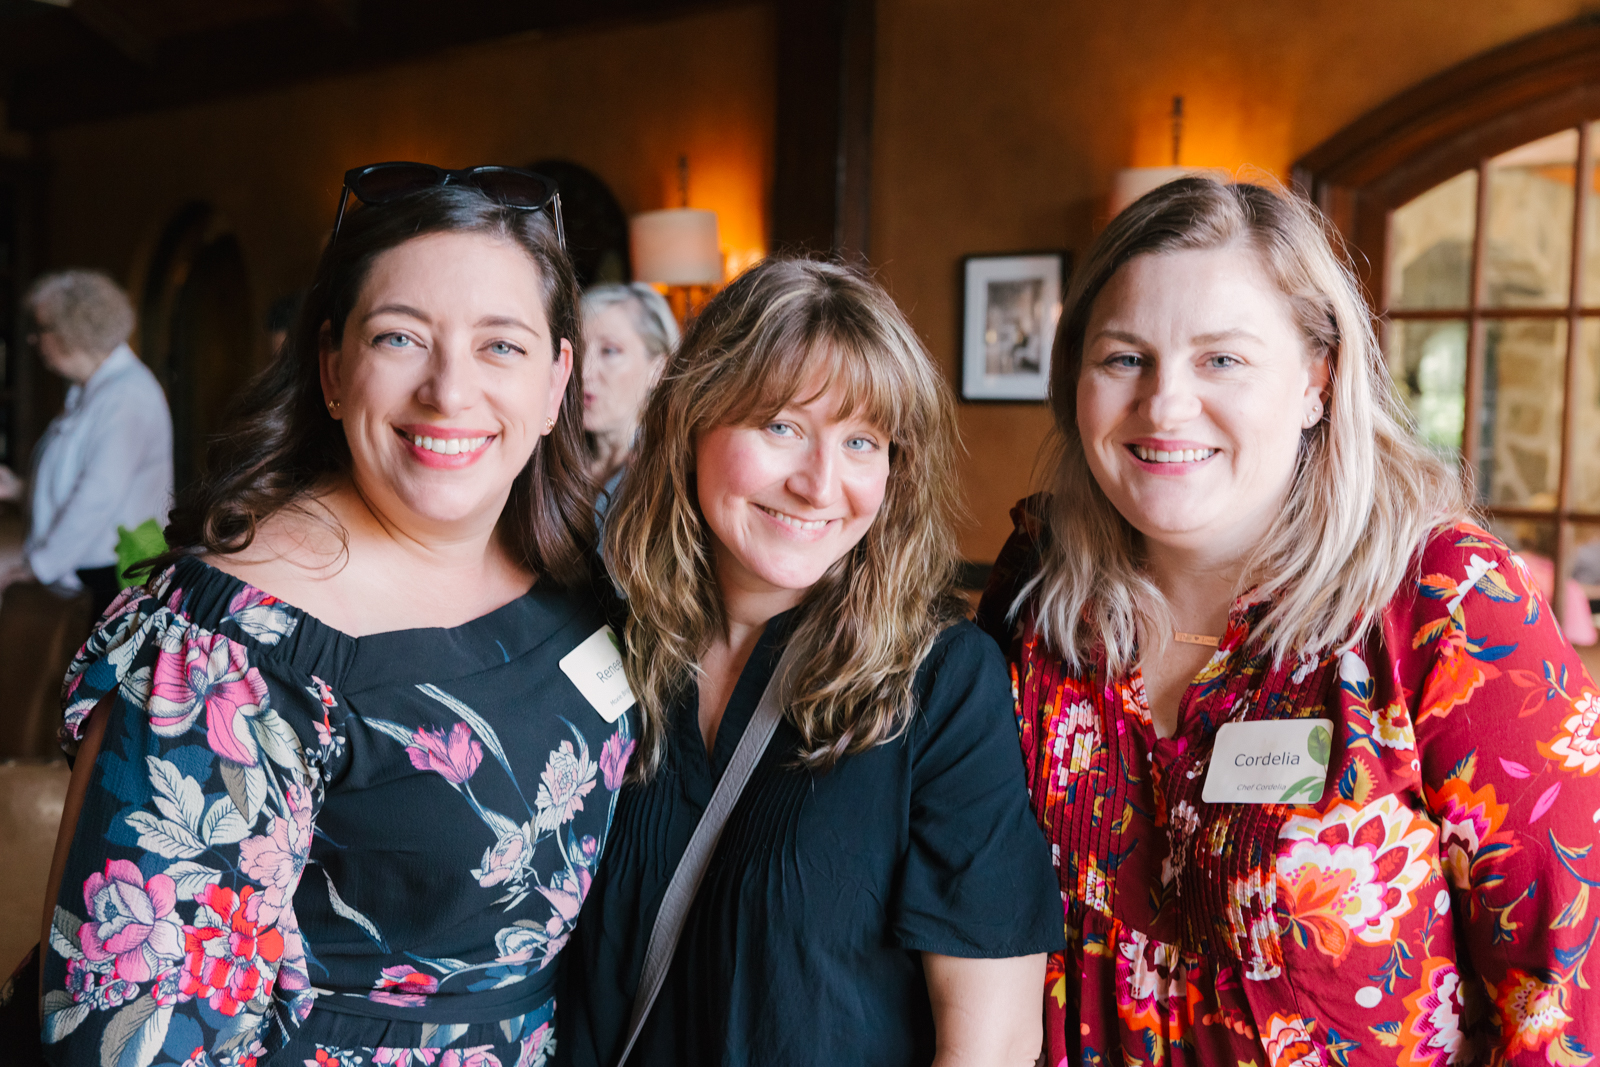 Renee from  Moxie Bright Event  with Valerie and Cordelia from  Chef Cordelia  at the  Prepaired  wedding vendor event at  Stonehaus .